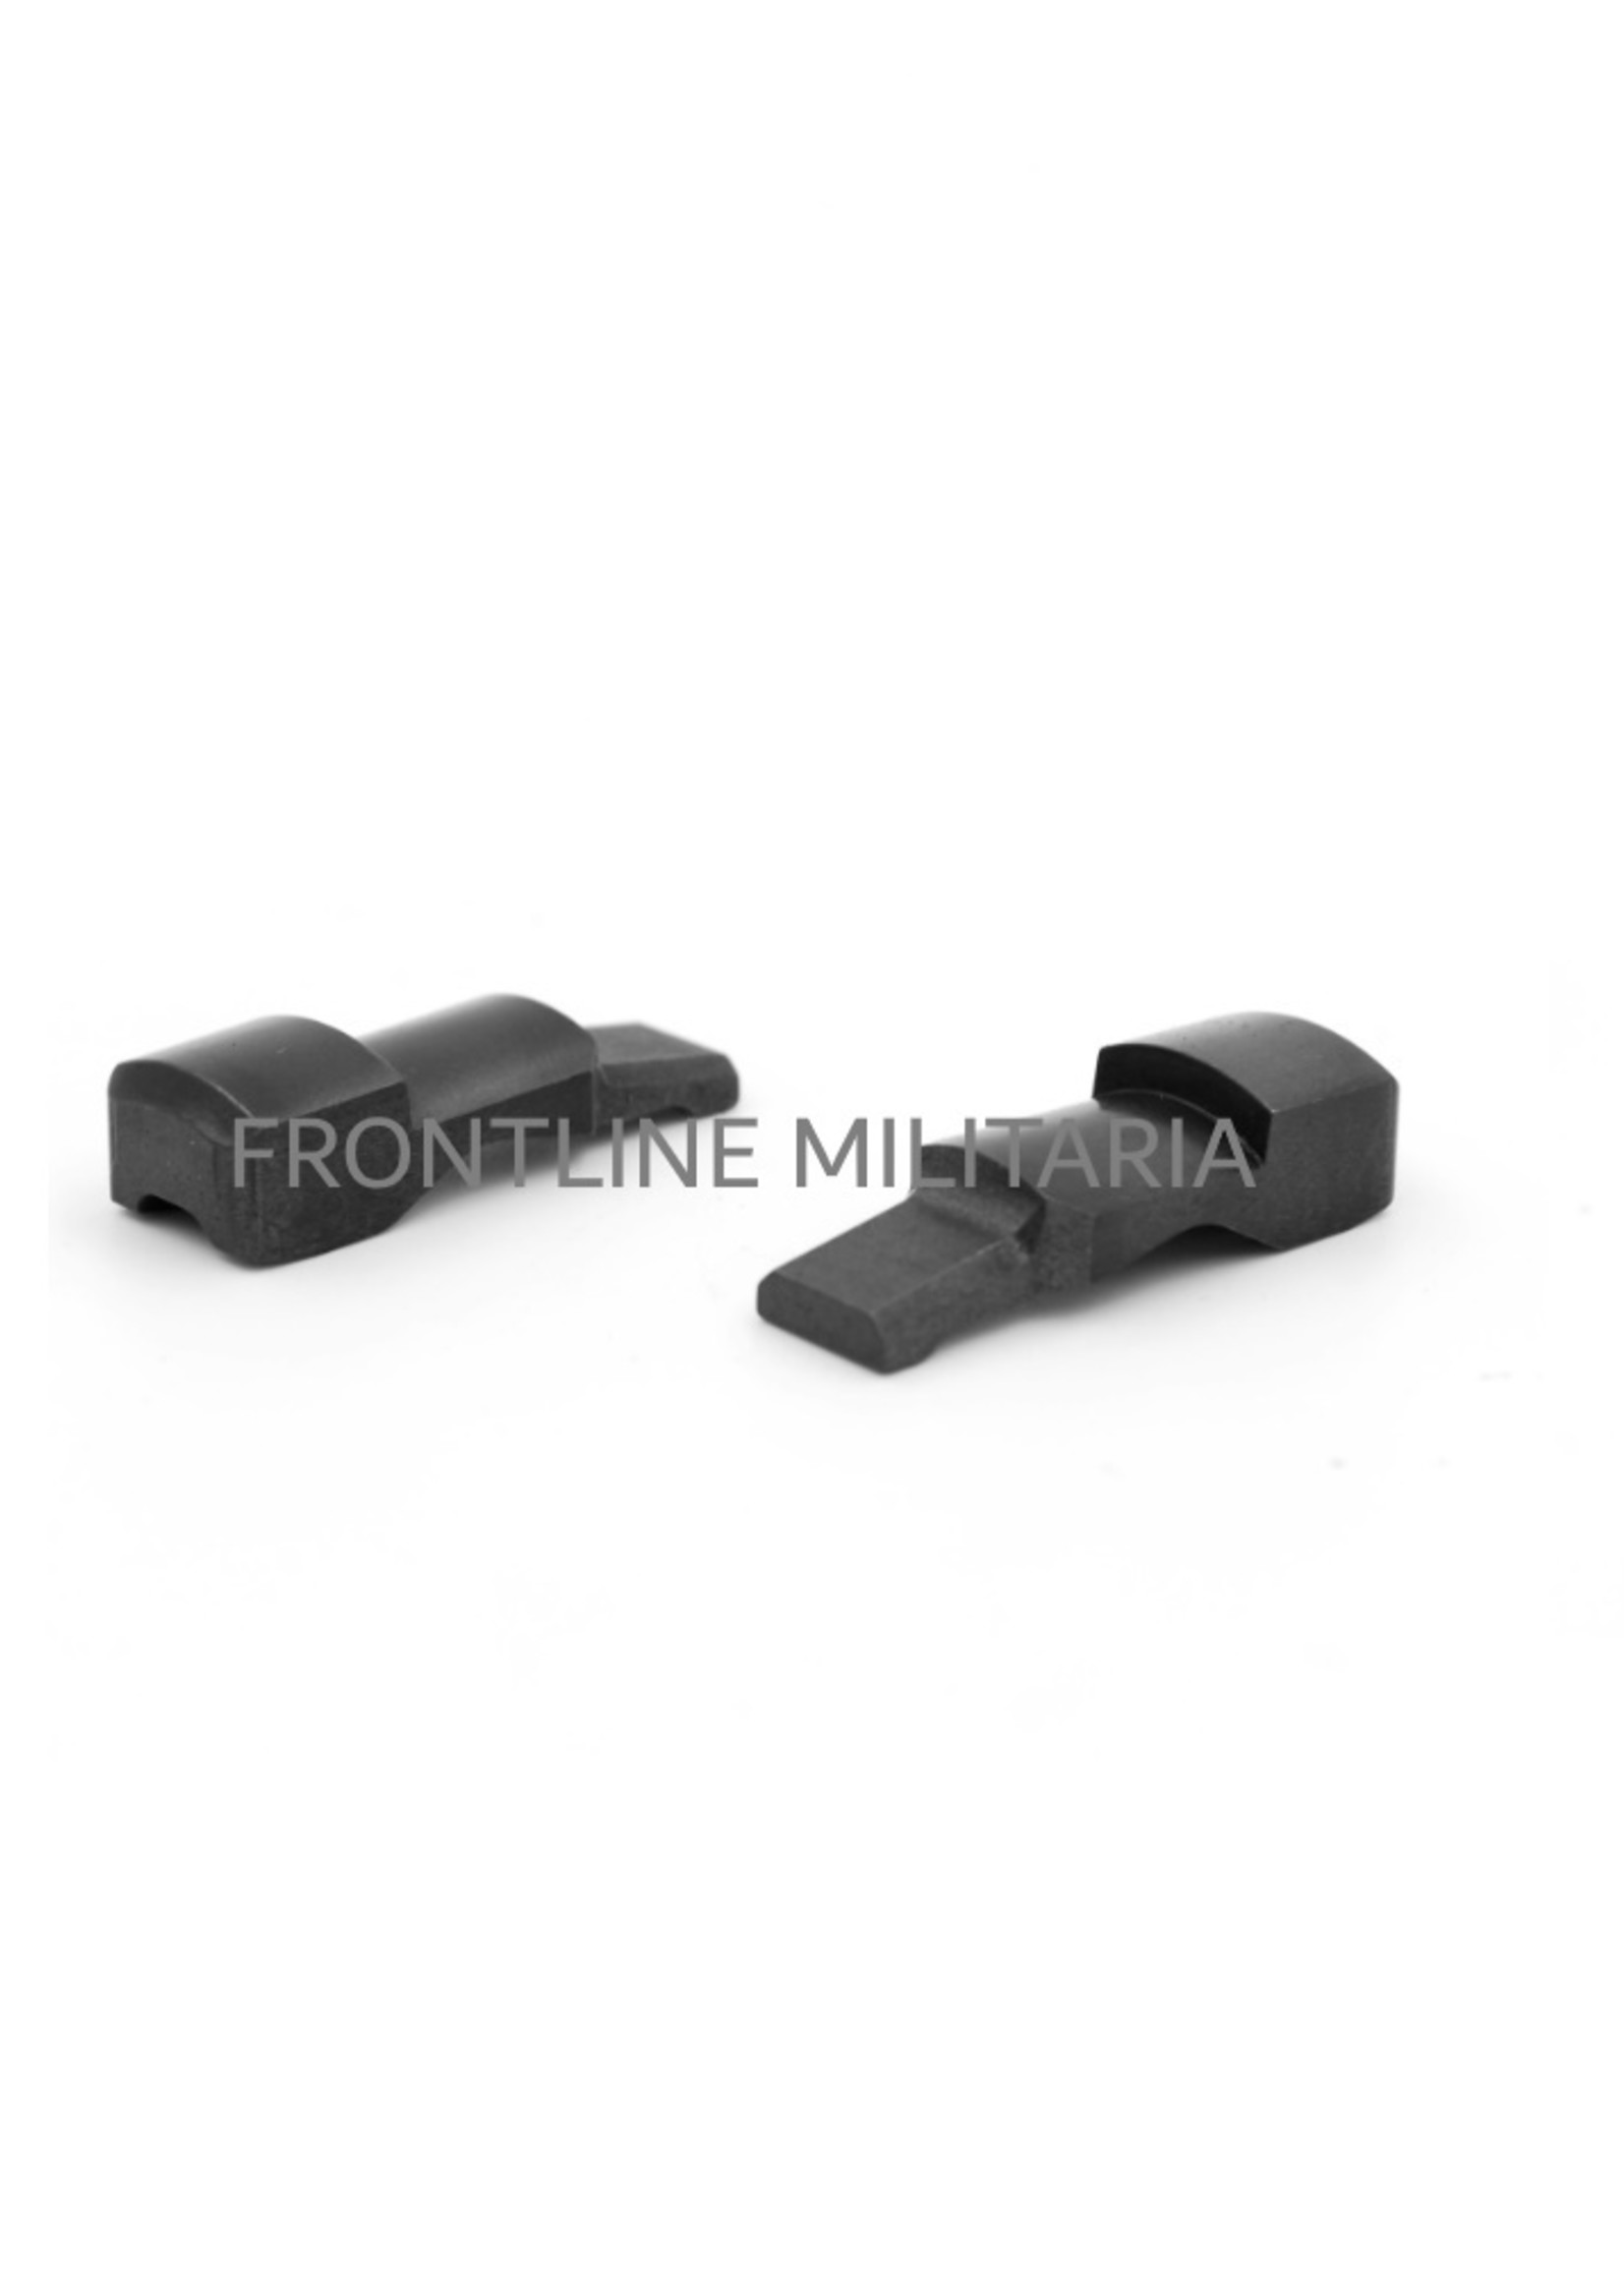 Locking lugs for the G43 and K43 Rifle